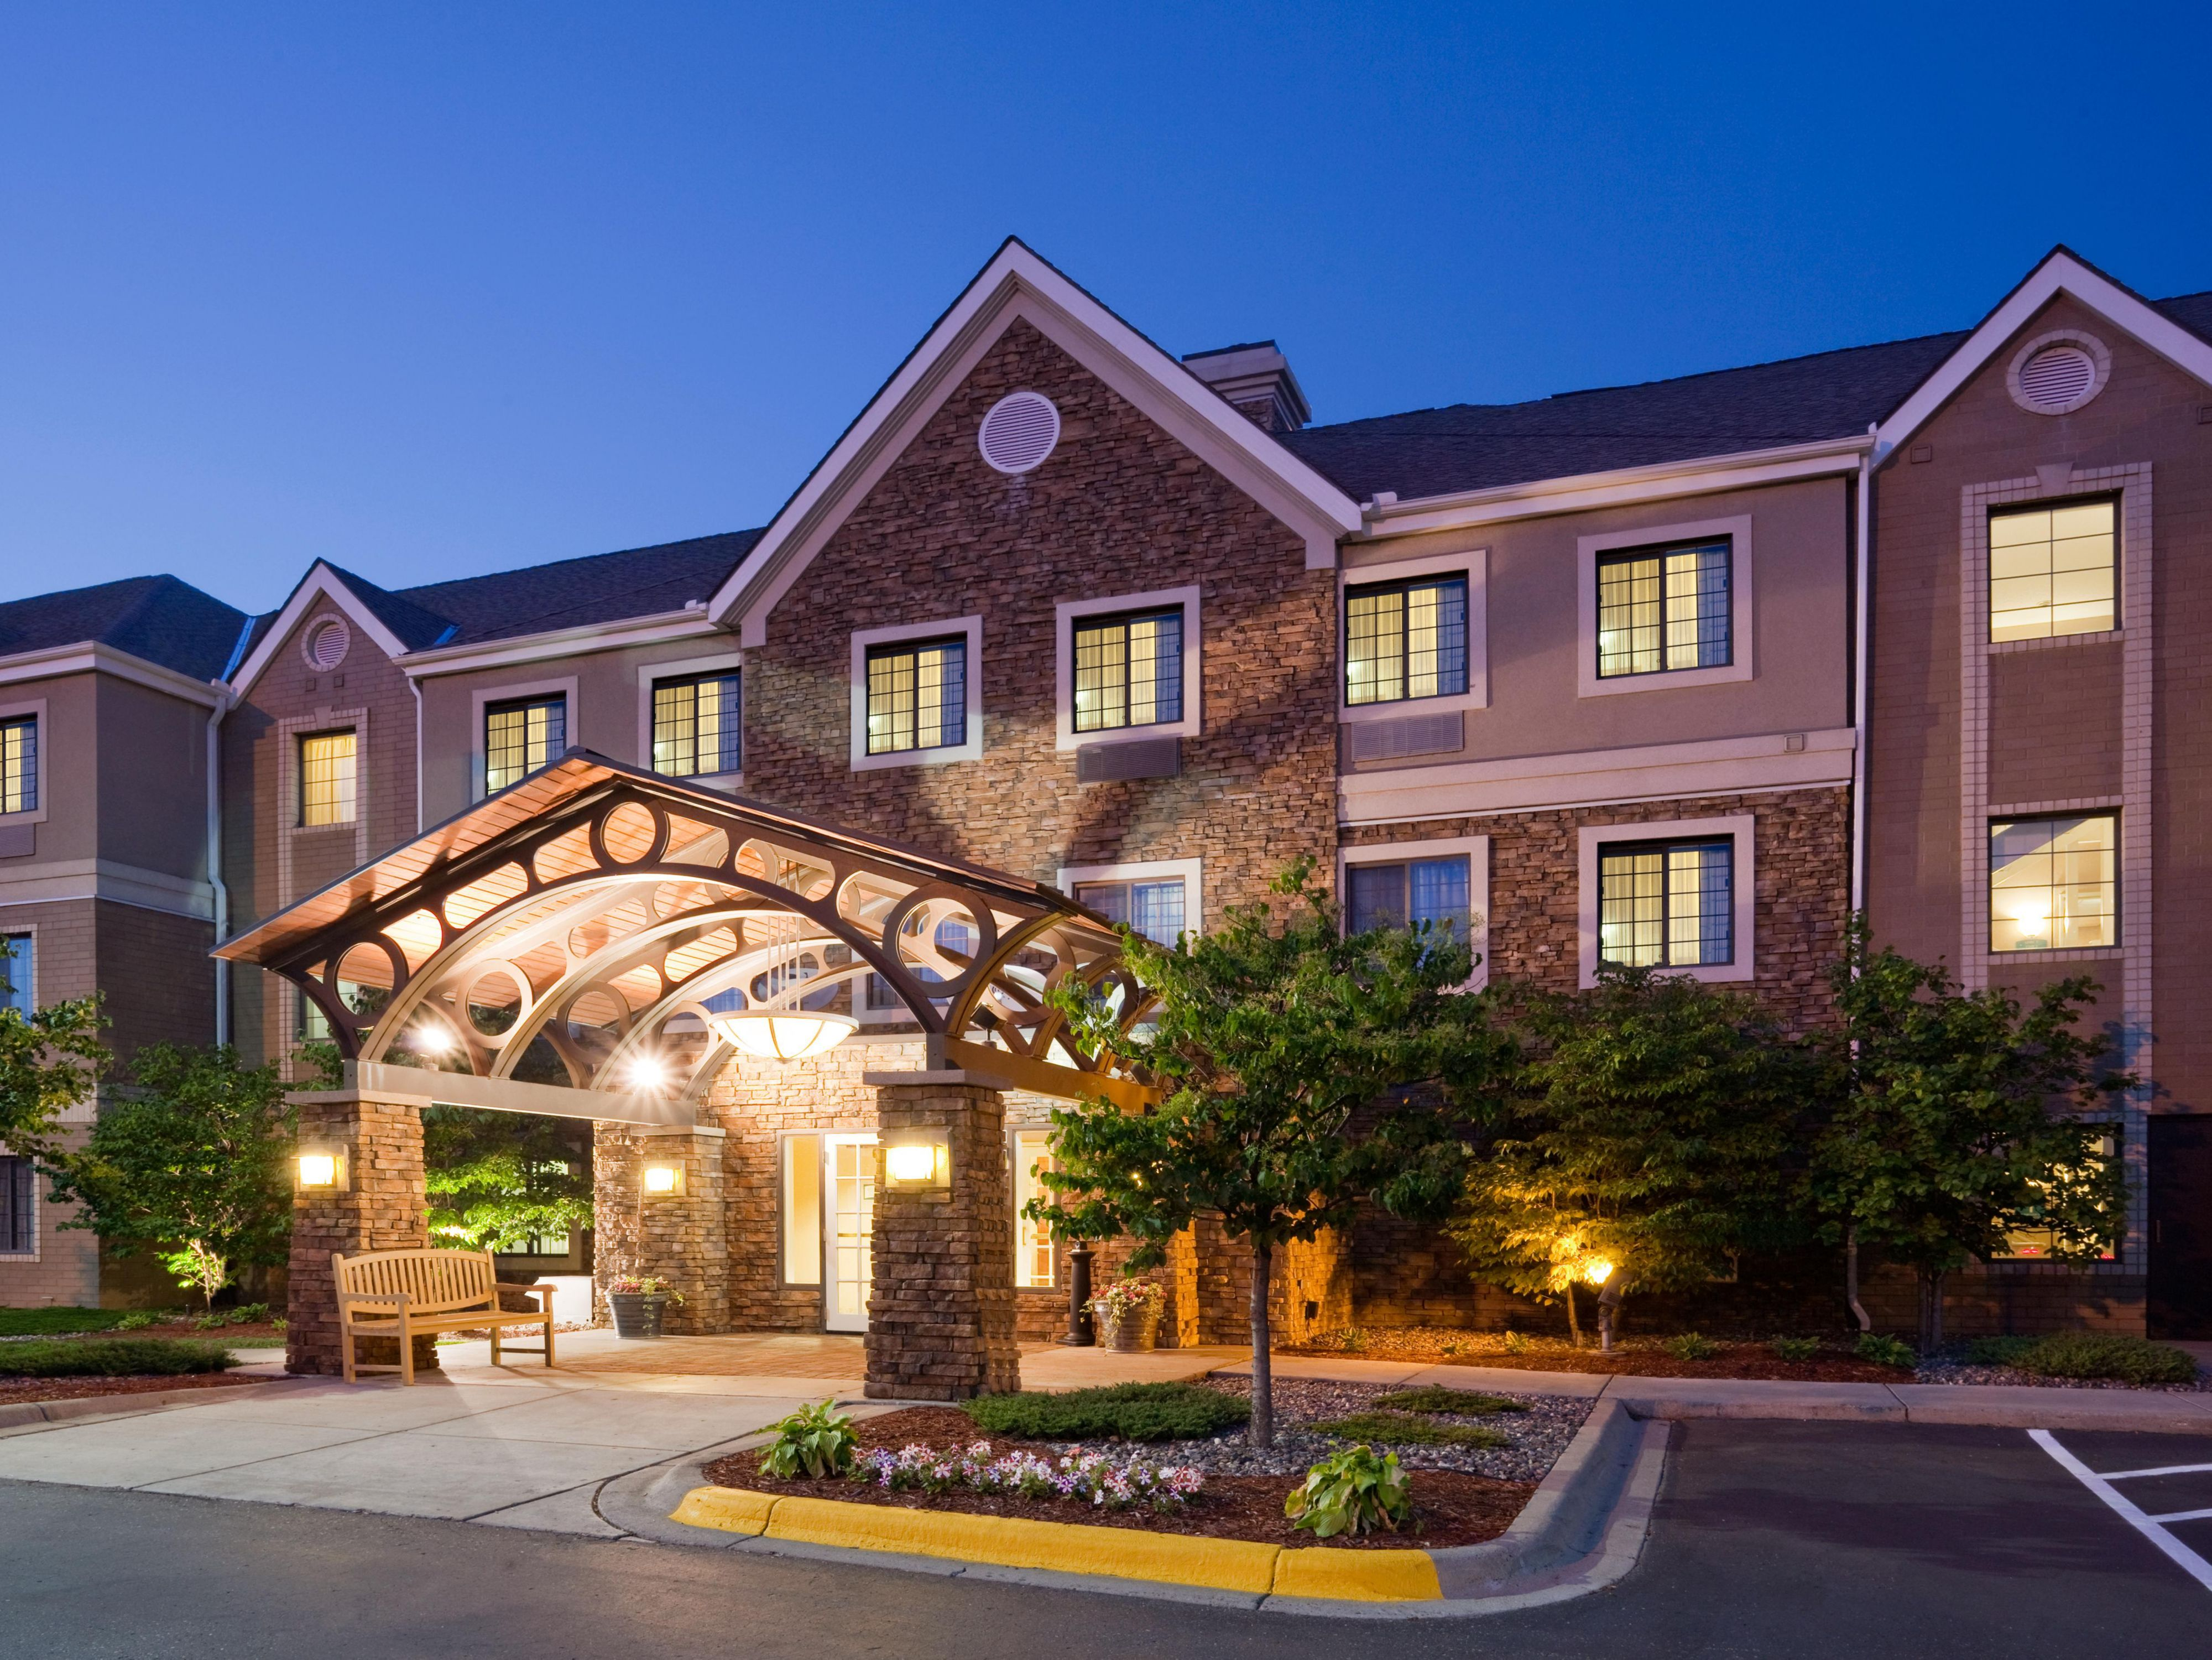 Arbor Lakes is a commercial and residential district located in downtown Maple Grove, Minnesota, a northwestern suburb of Minneapolis. Construction of Arbor Lakes began in the late s with a simulacrum of a traditional American Main Street designed in neotraditional style.